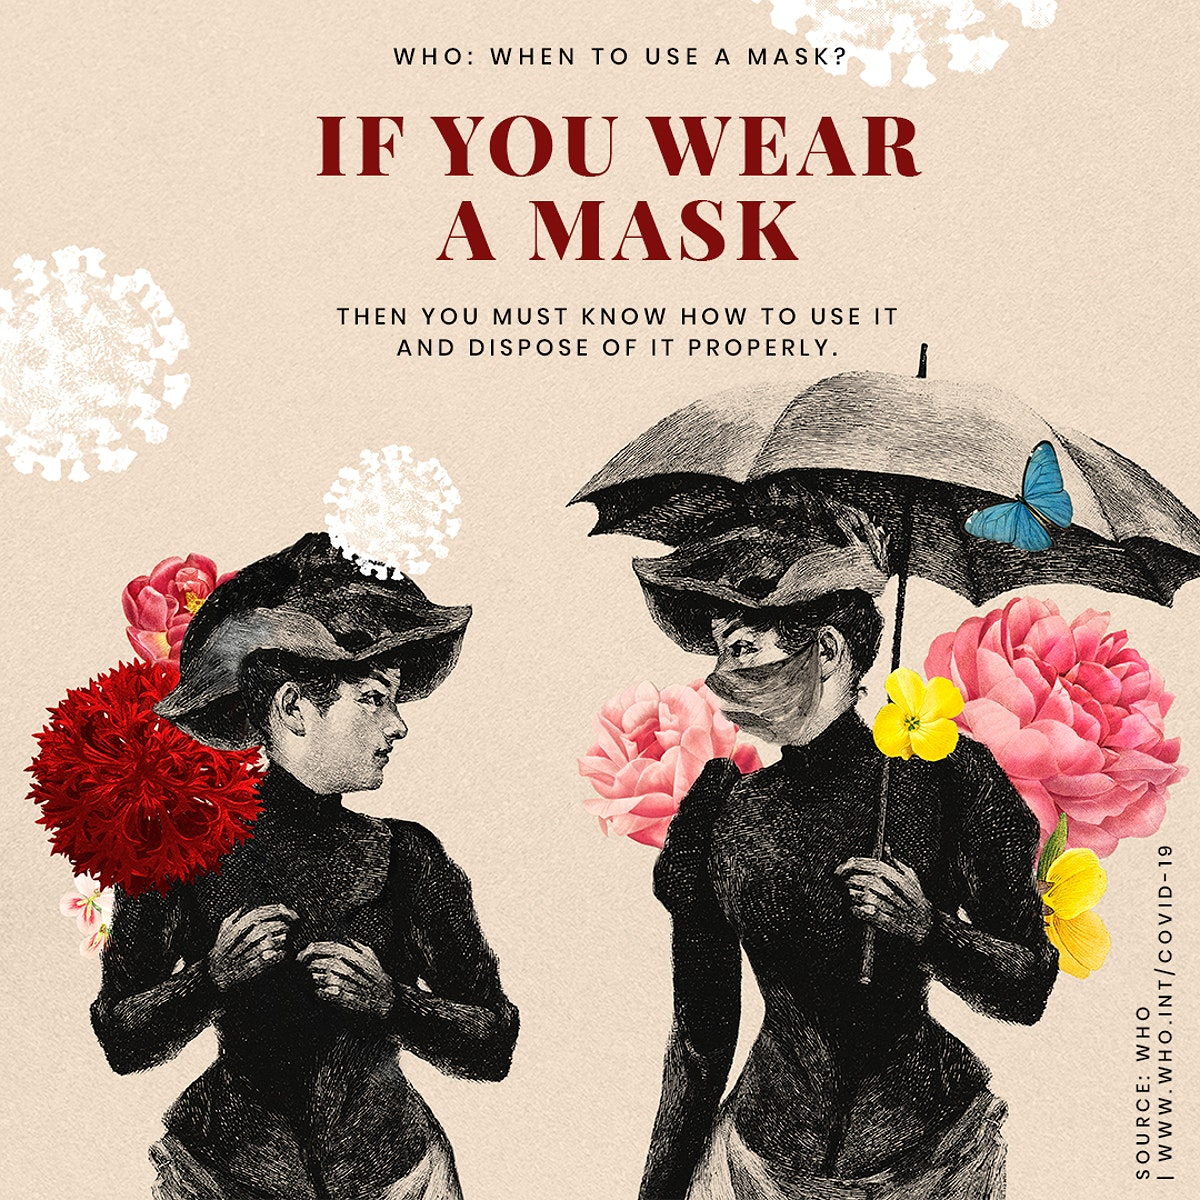 Advice on proper ways to wear a mask provided by WHO and vintage illustration psd mockup social ad